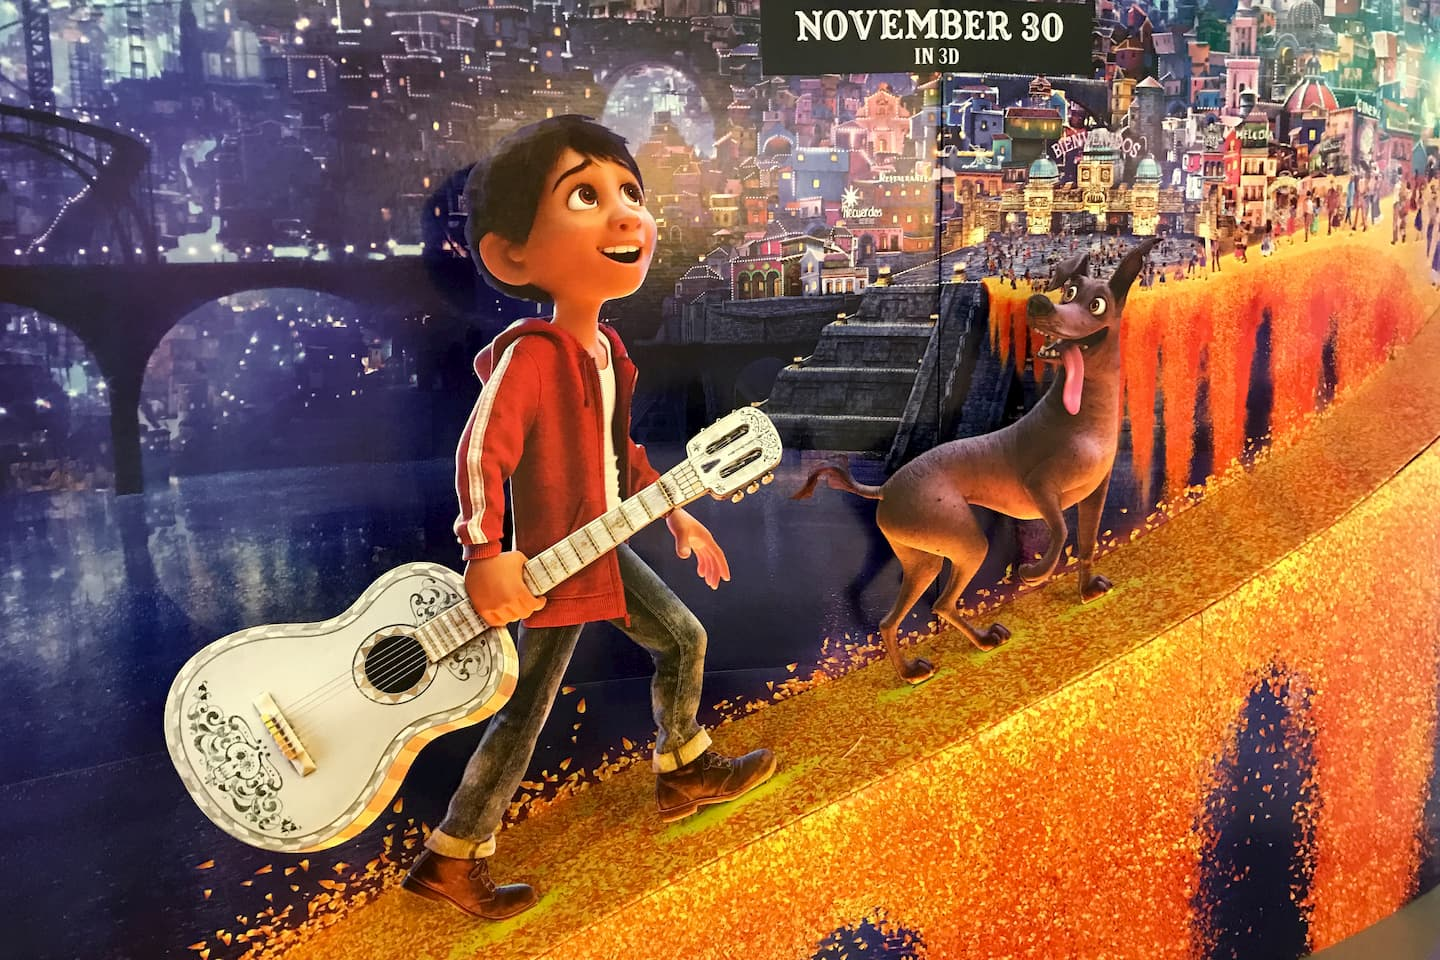 Movies-Coco